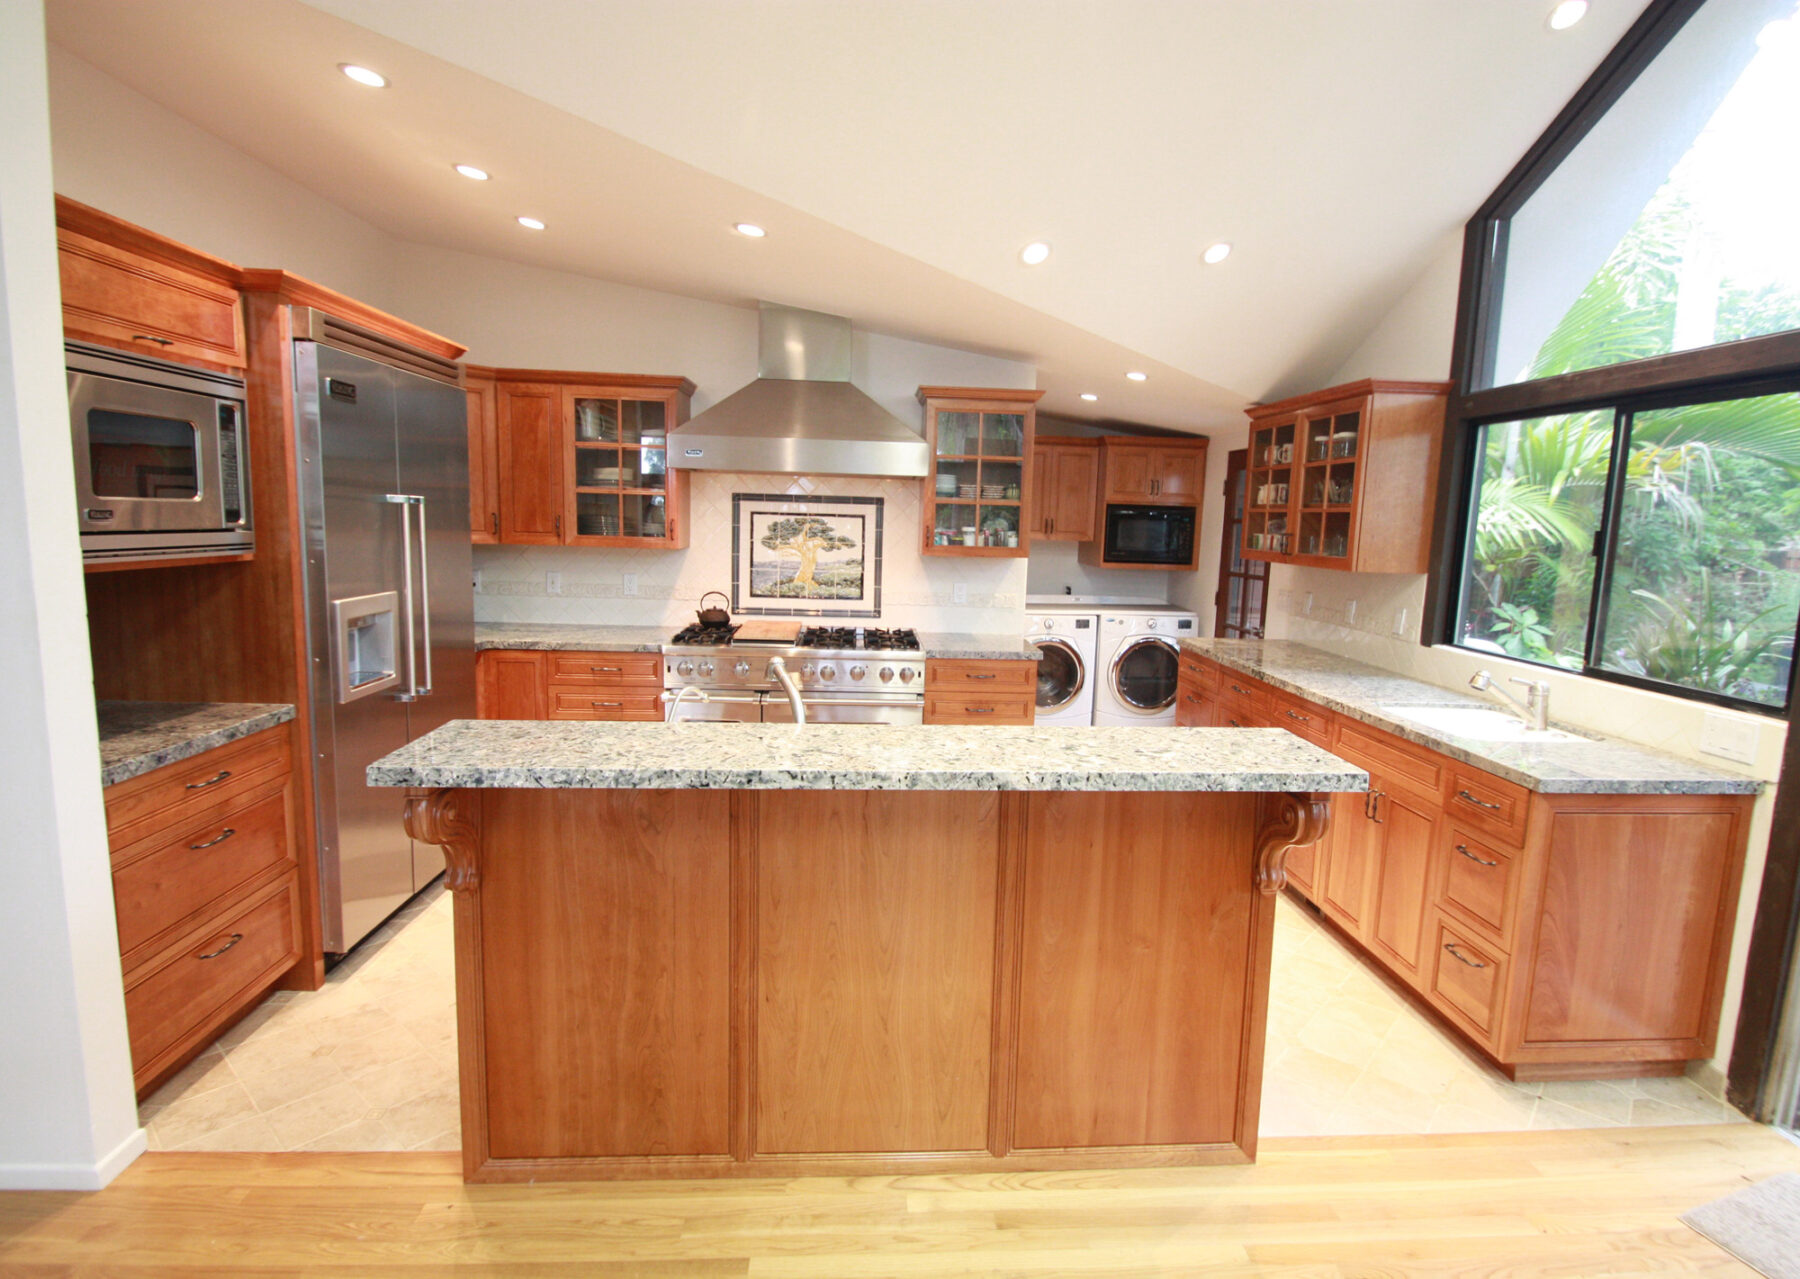 A full kitchen remodel with Cherry wood cabinetry